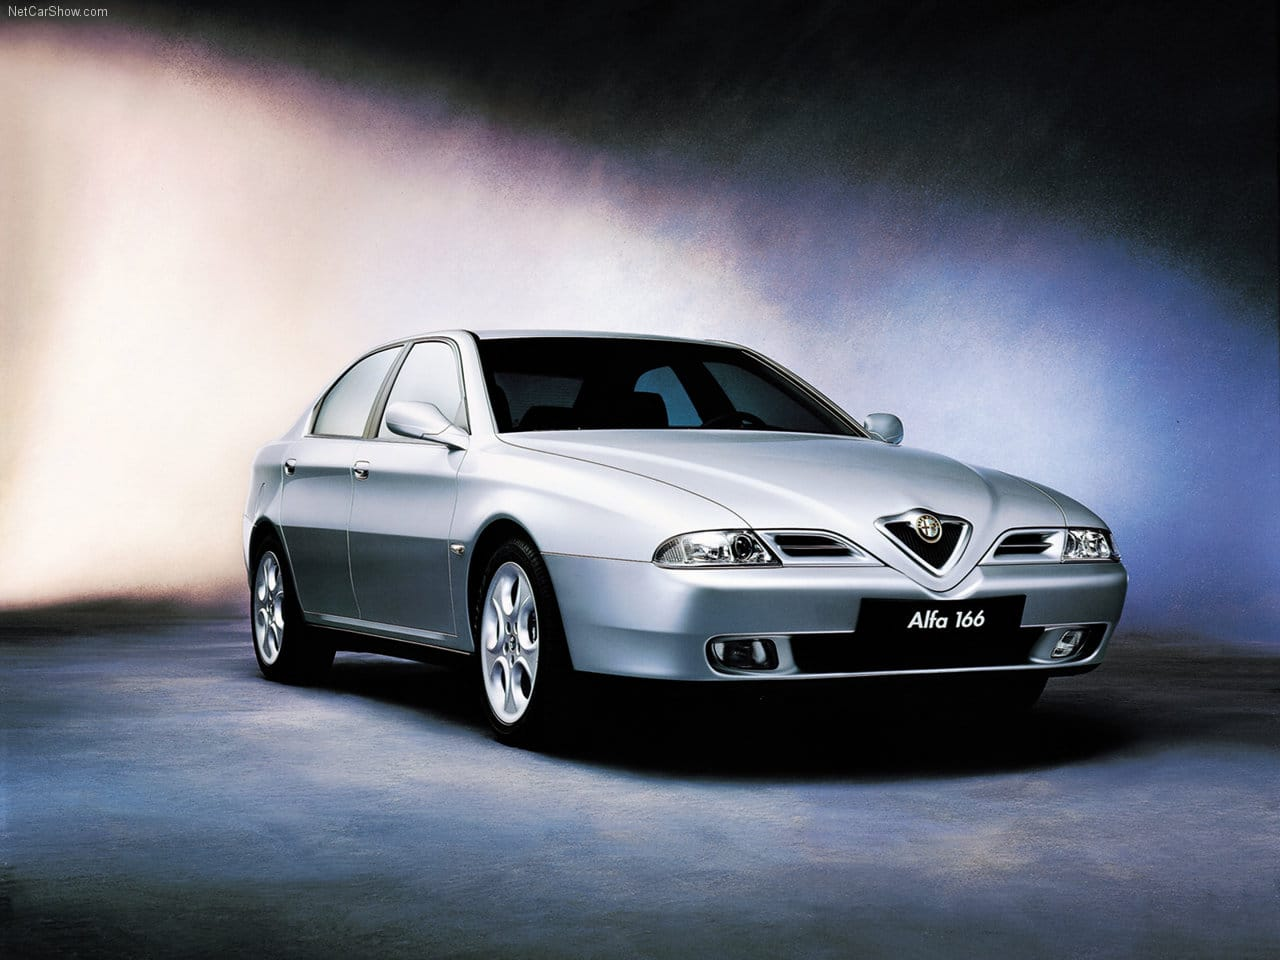 alfa romeo 166, 166, alfa romeo, alfa, italia, italy, italian car, cars, car, motoring, automotive, autotrader, ebay, automotive, saloon, v6